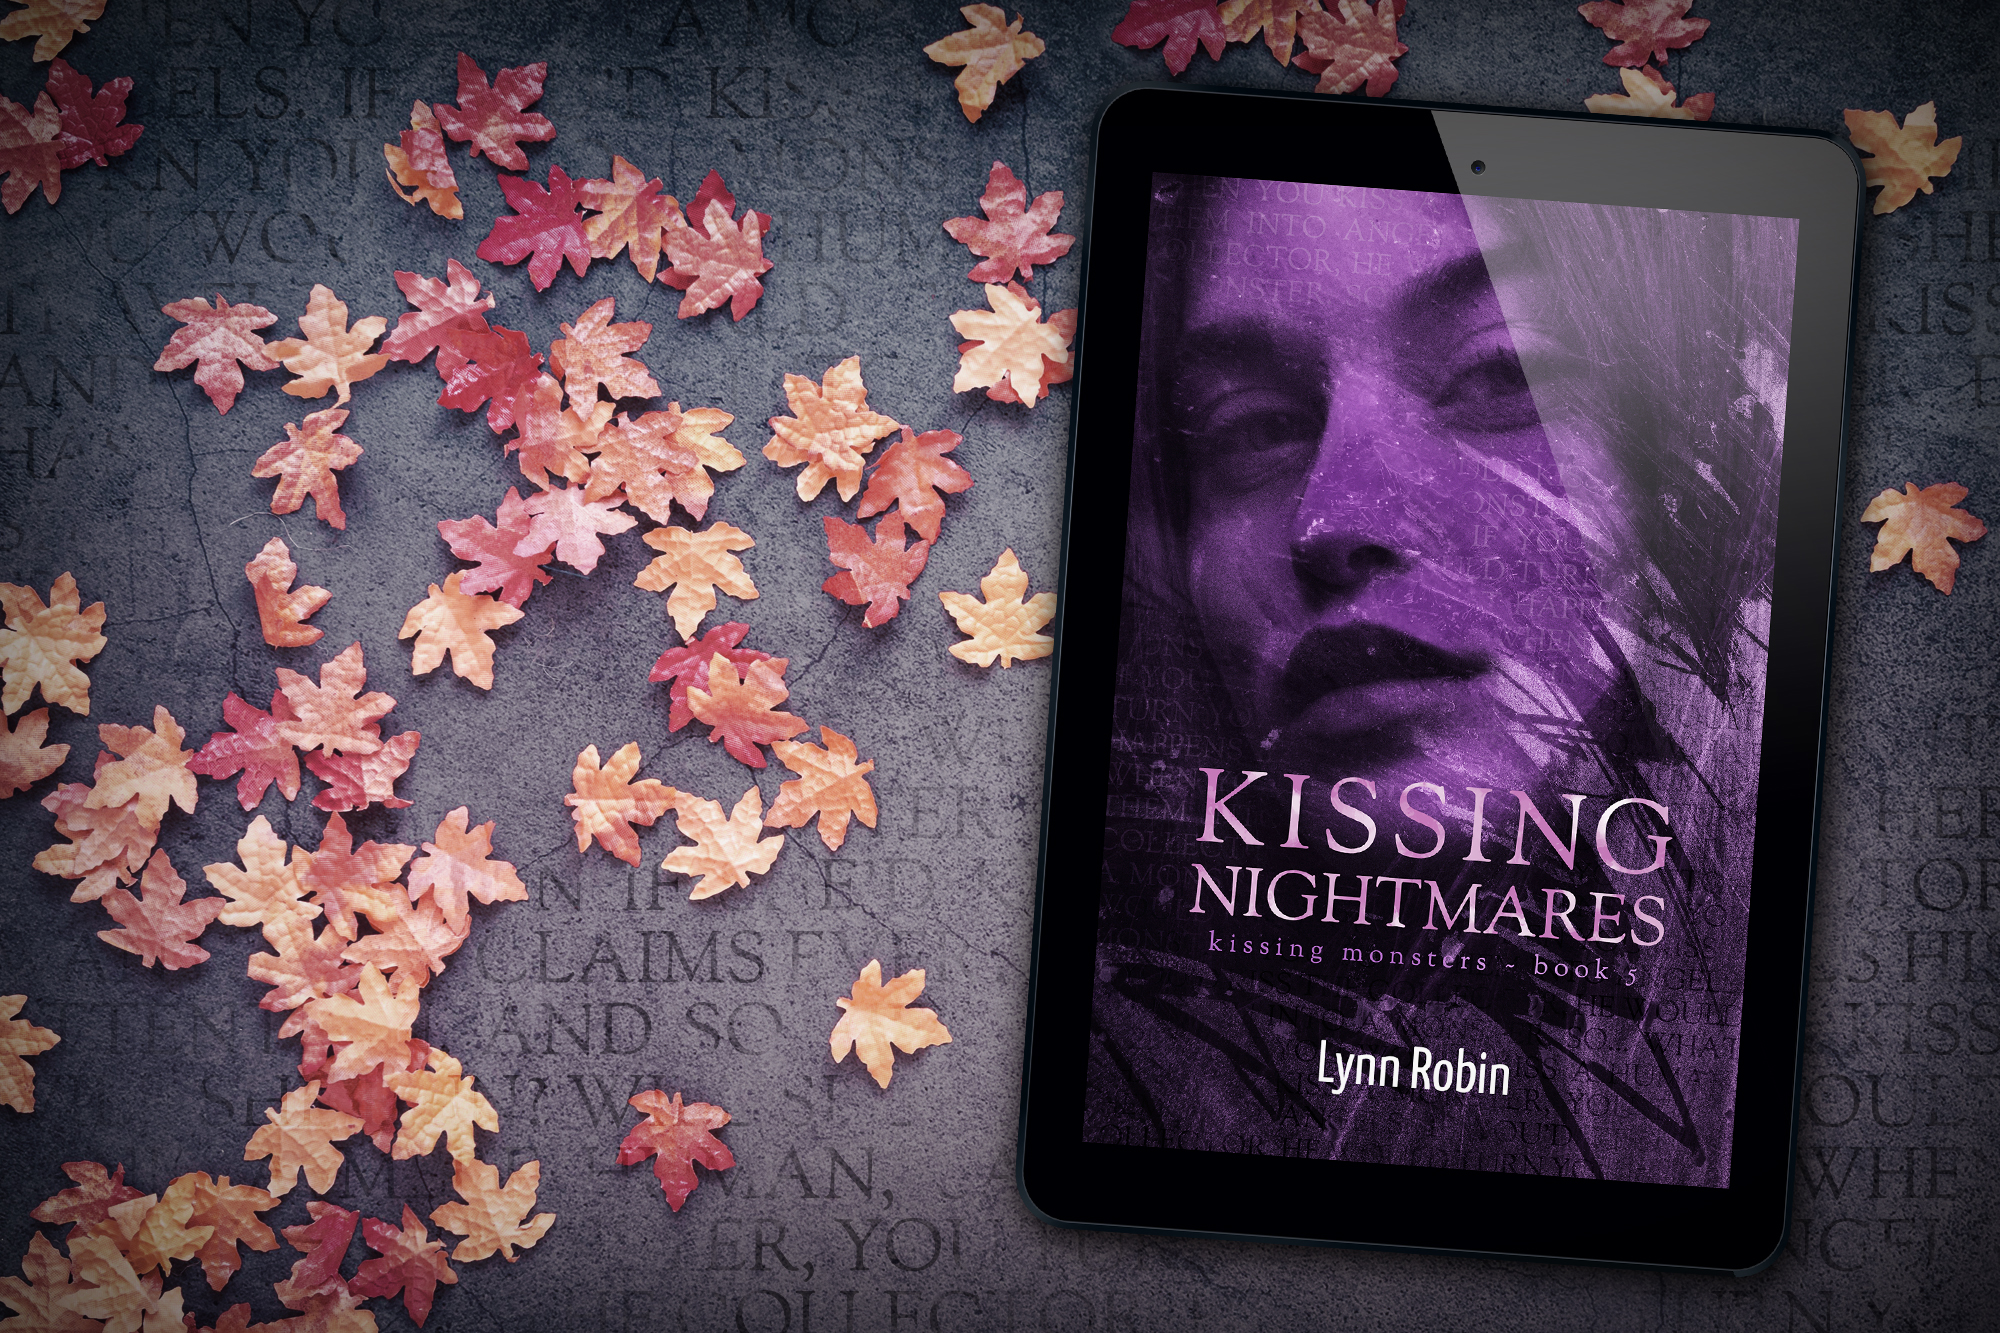 NEW RELEASE | OUT NOW: KISSING NIGHTMARES (Kissing Monsters 5)